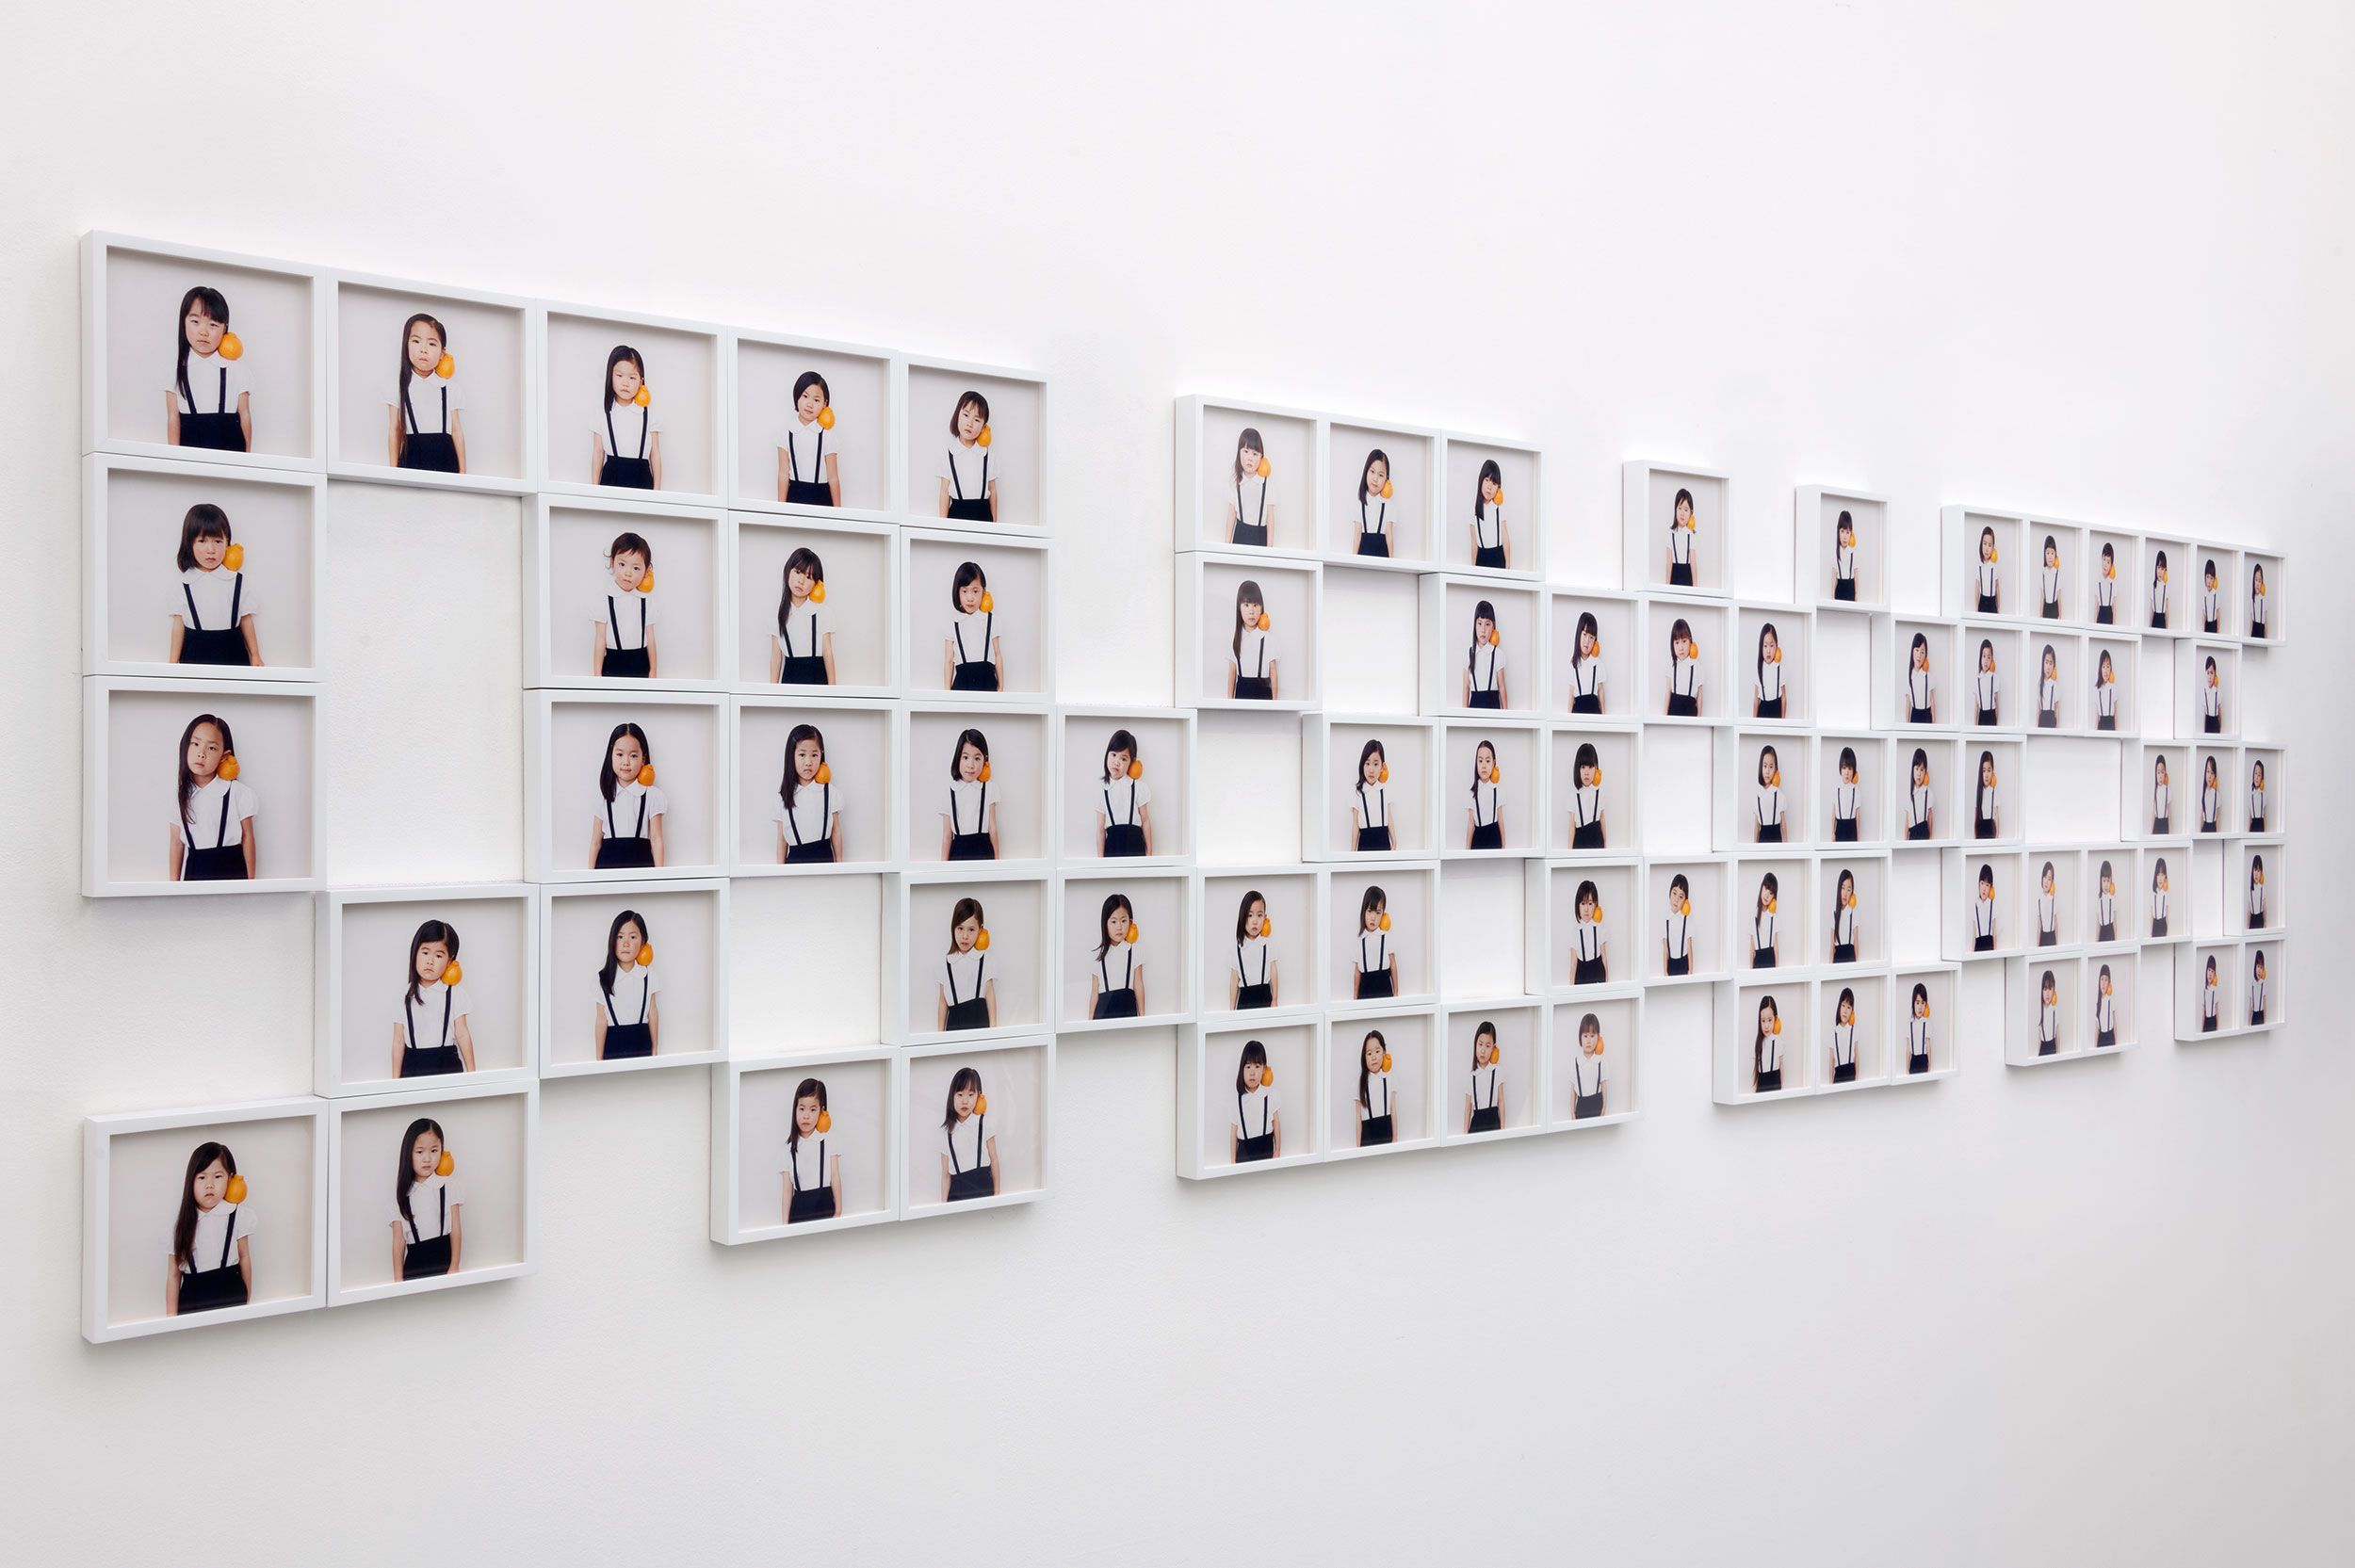 Osamu Yokonami,  1000 Children: Sumo Mandarin (installation view) , 2018  (75) digital pigment prints, 146 x 168 mm each (approx. 5.5 x 6.6 in each), framed, $240 each   Inquire